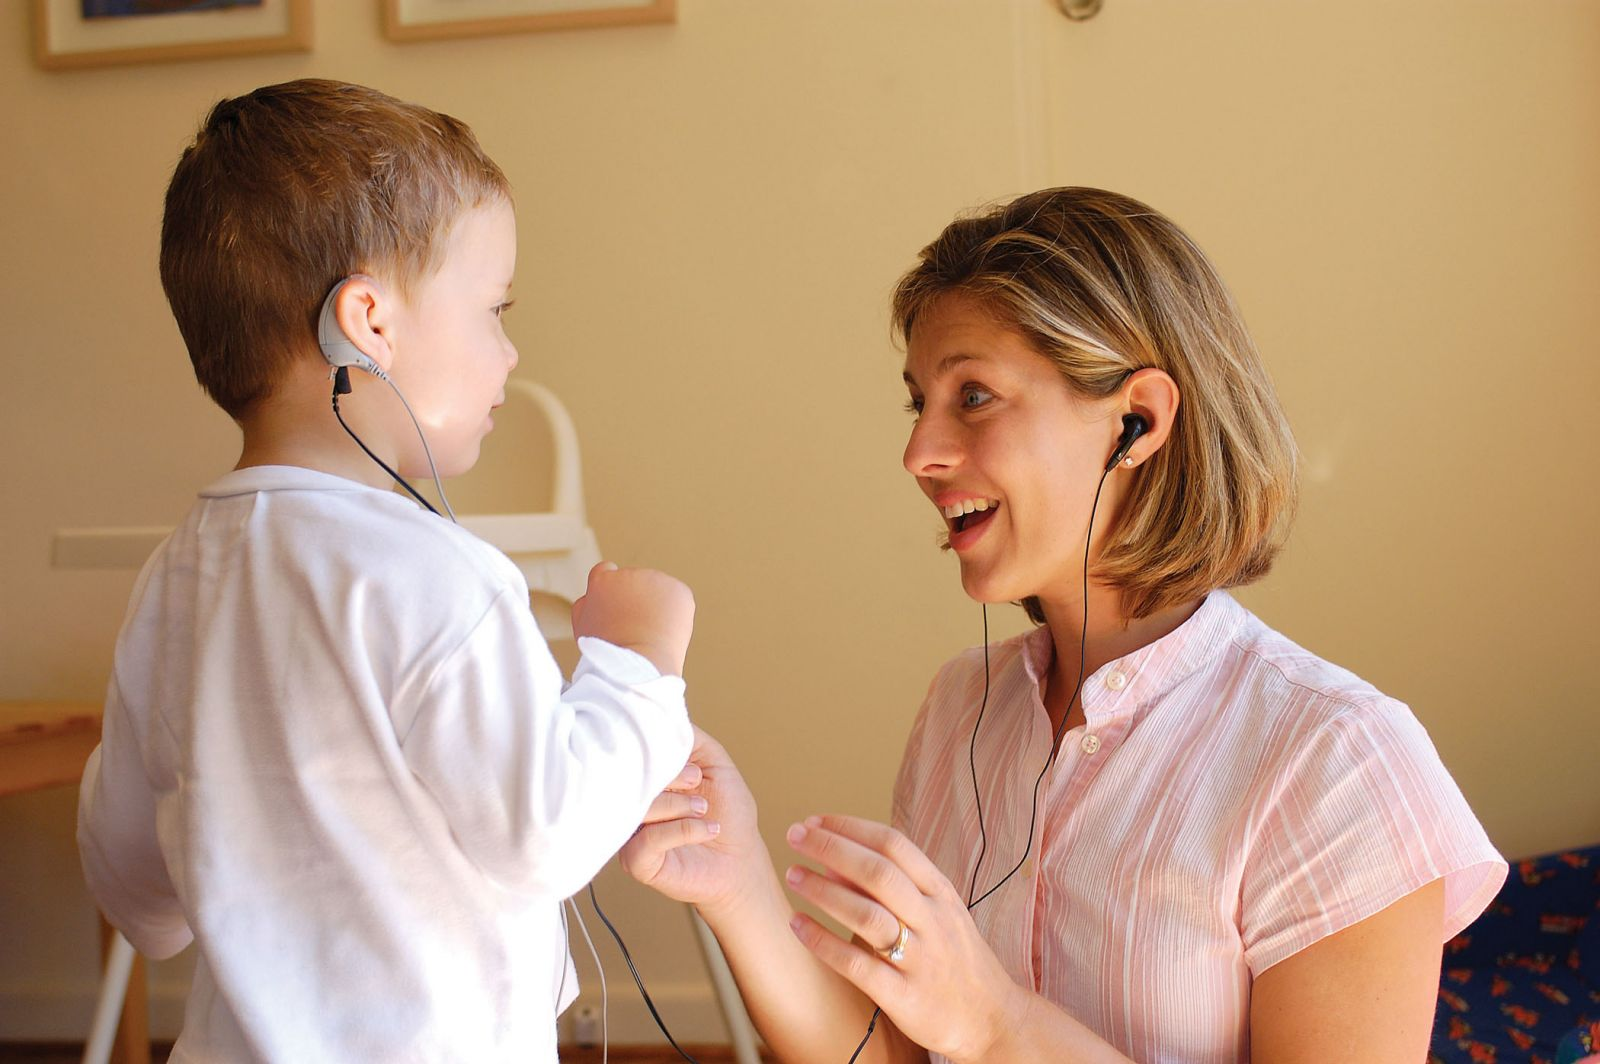 the negative effects of the cochlear implant that has been placed on the deaf community